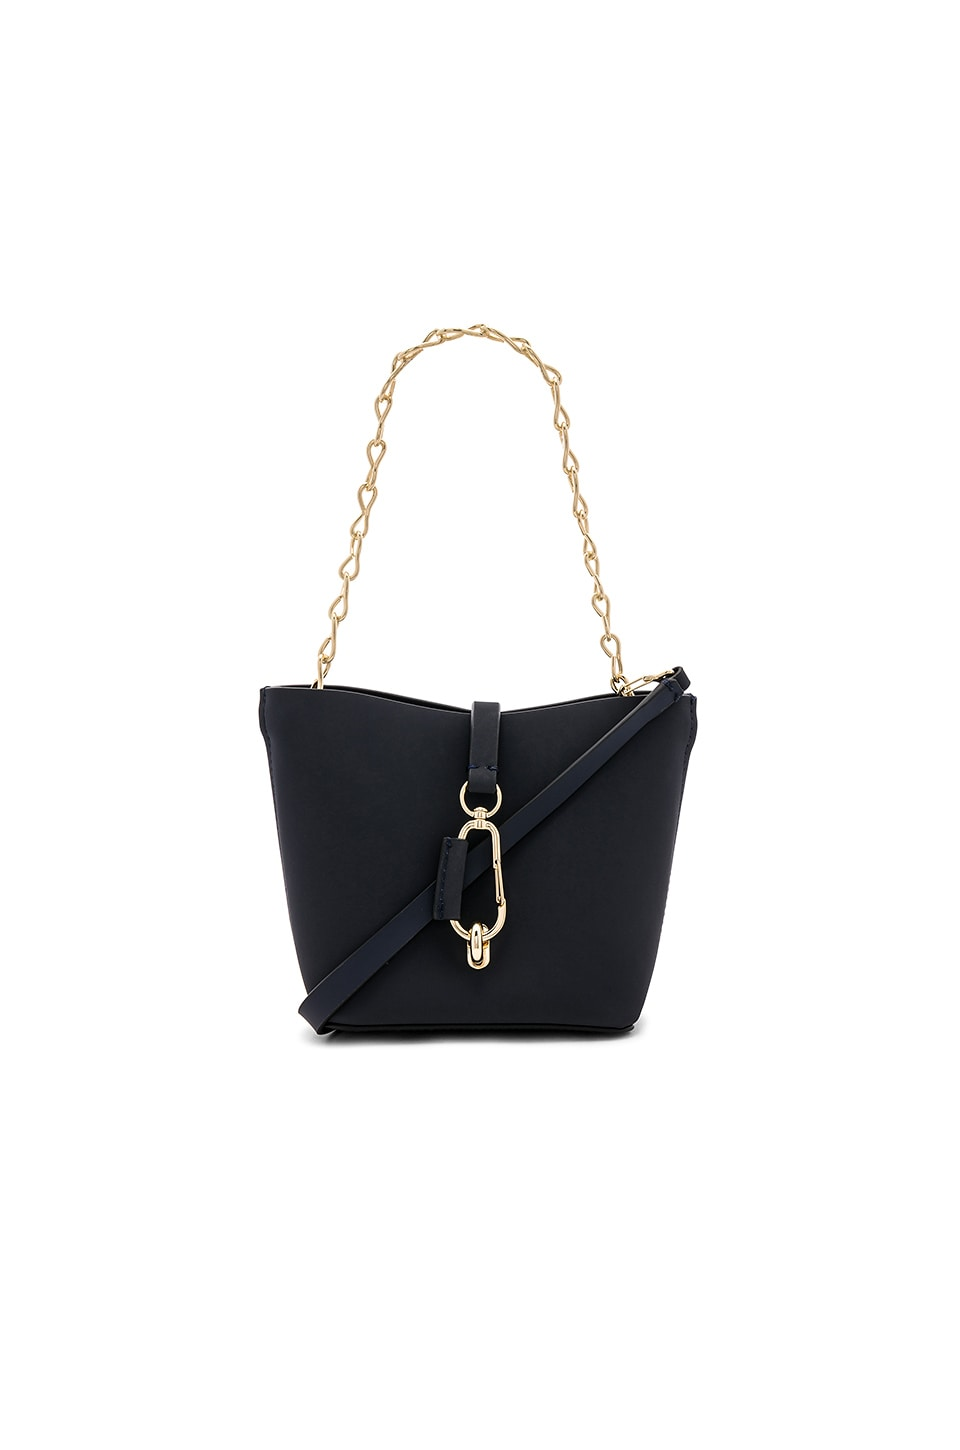 Zac Zac Posen Belay Mini Chain Hobo Bag in Parisian Nights